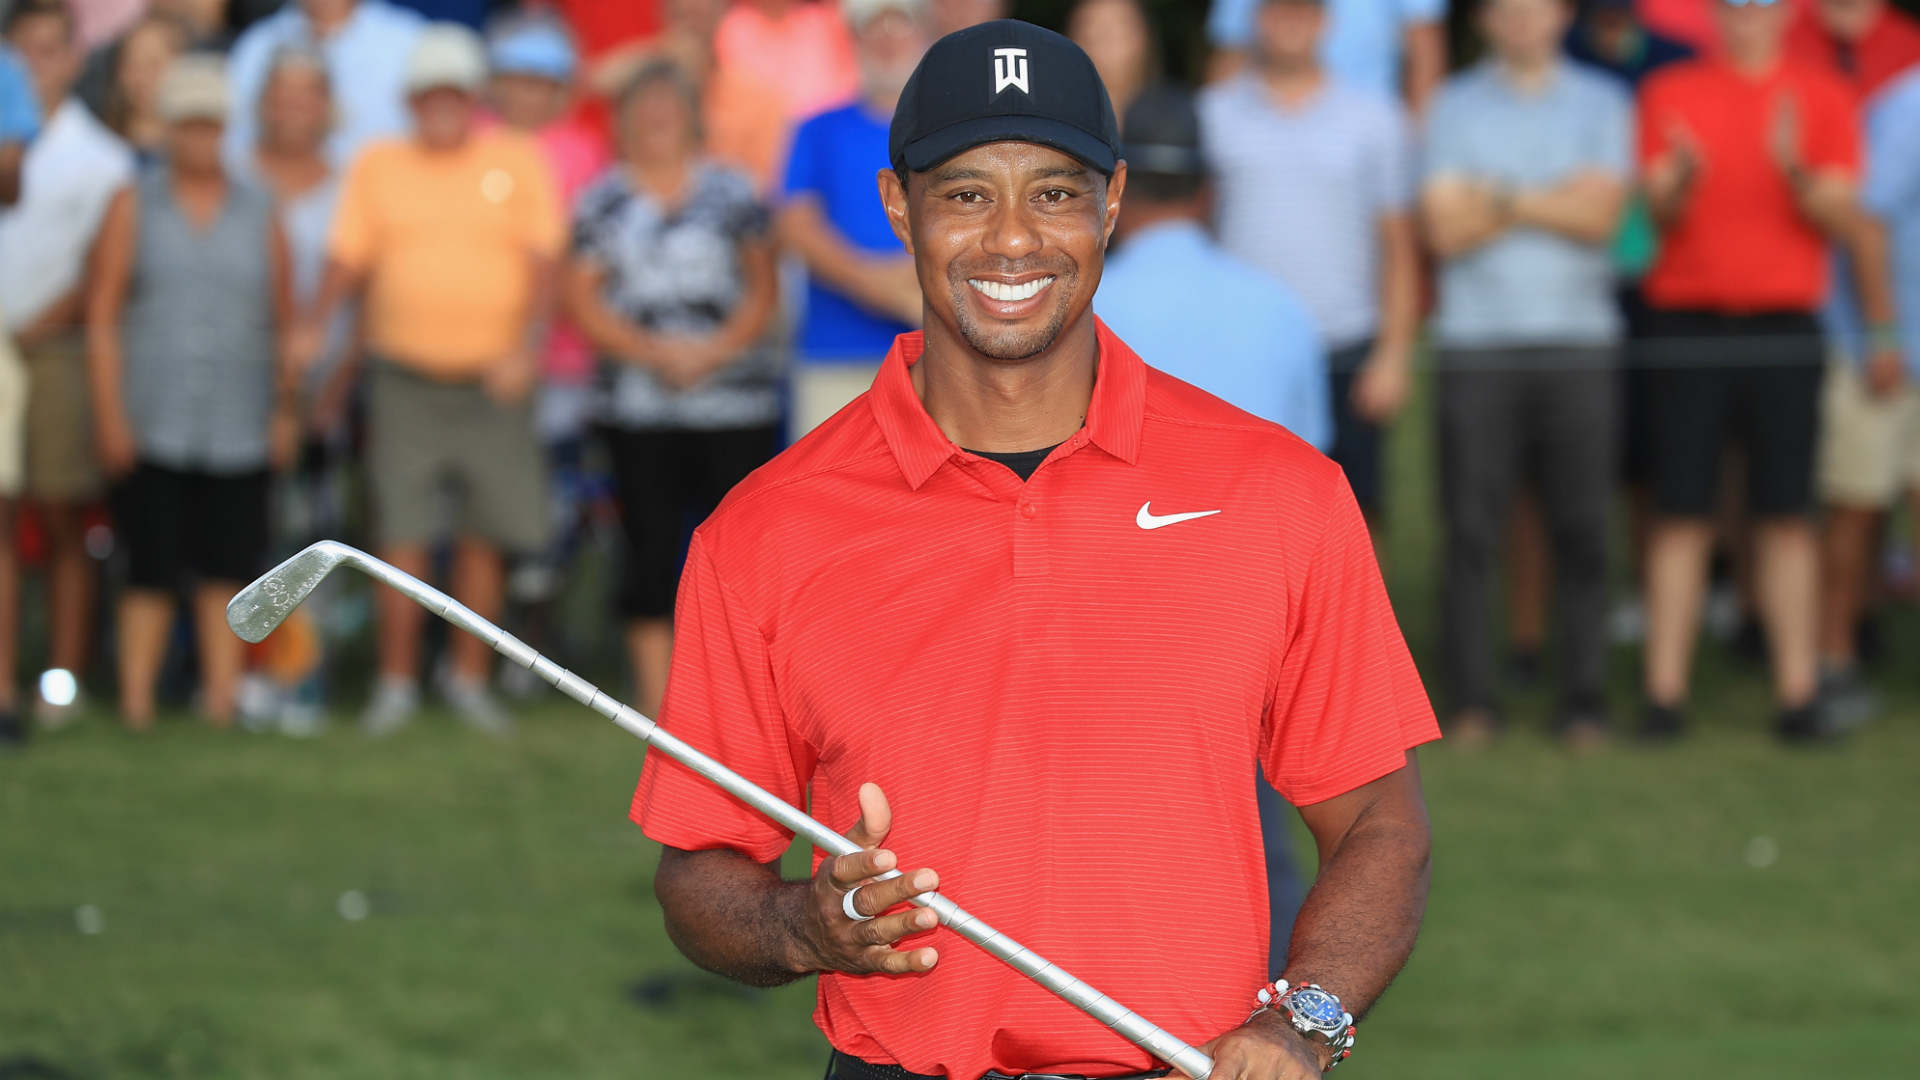 Tiger Woods ends five-year drought with Tour Championship triumph